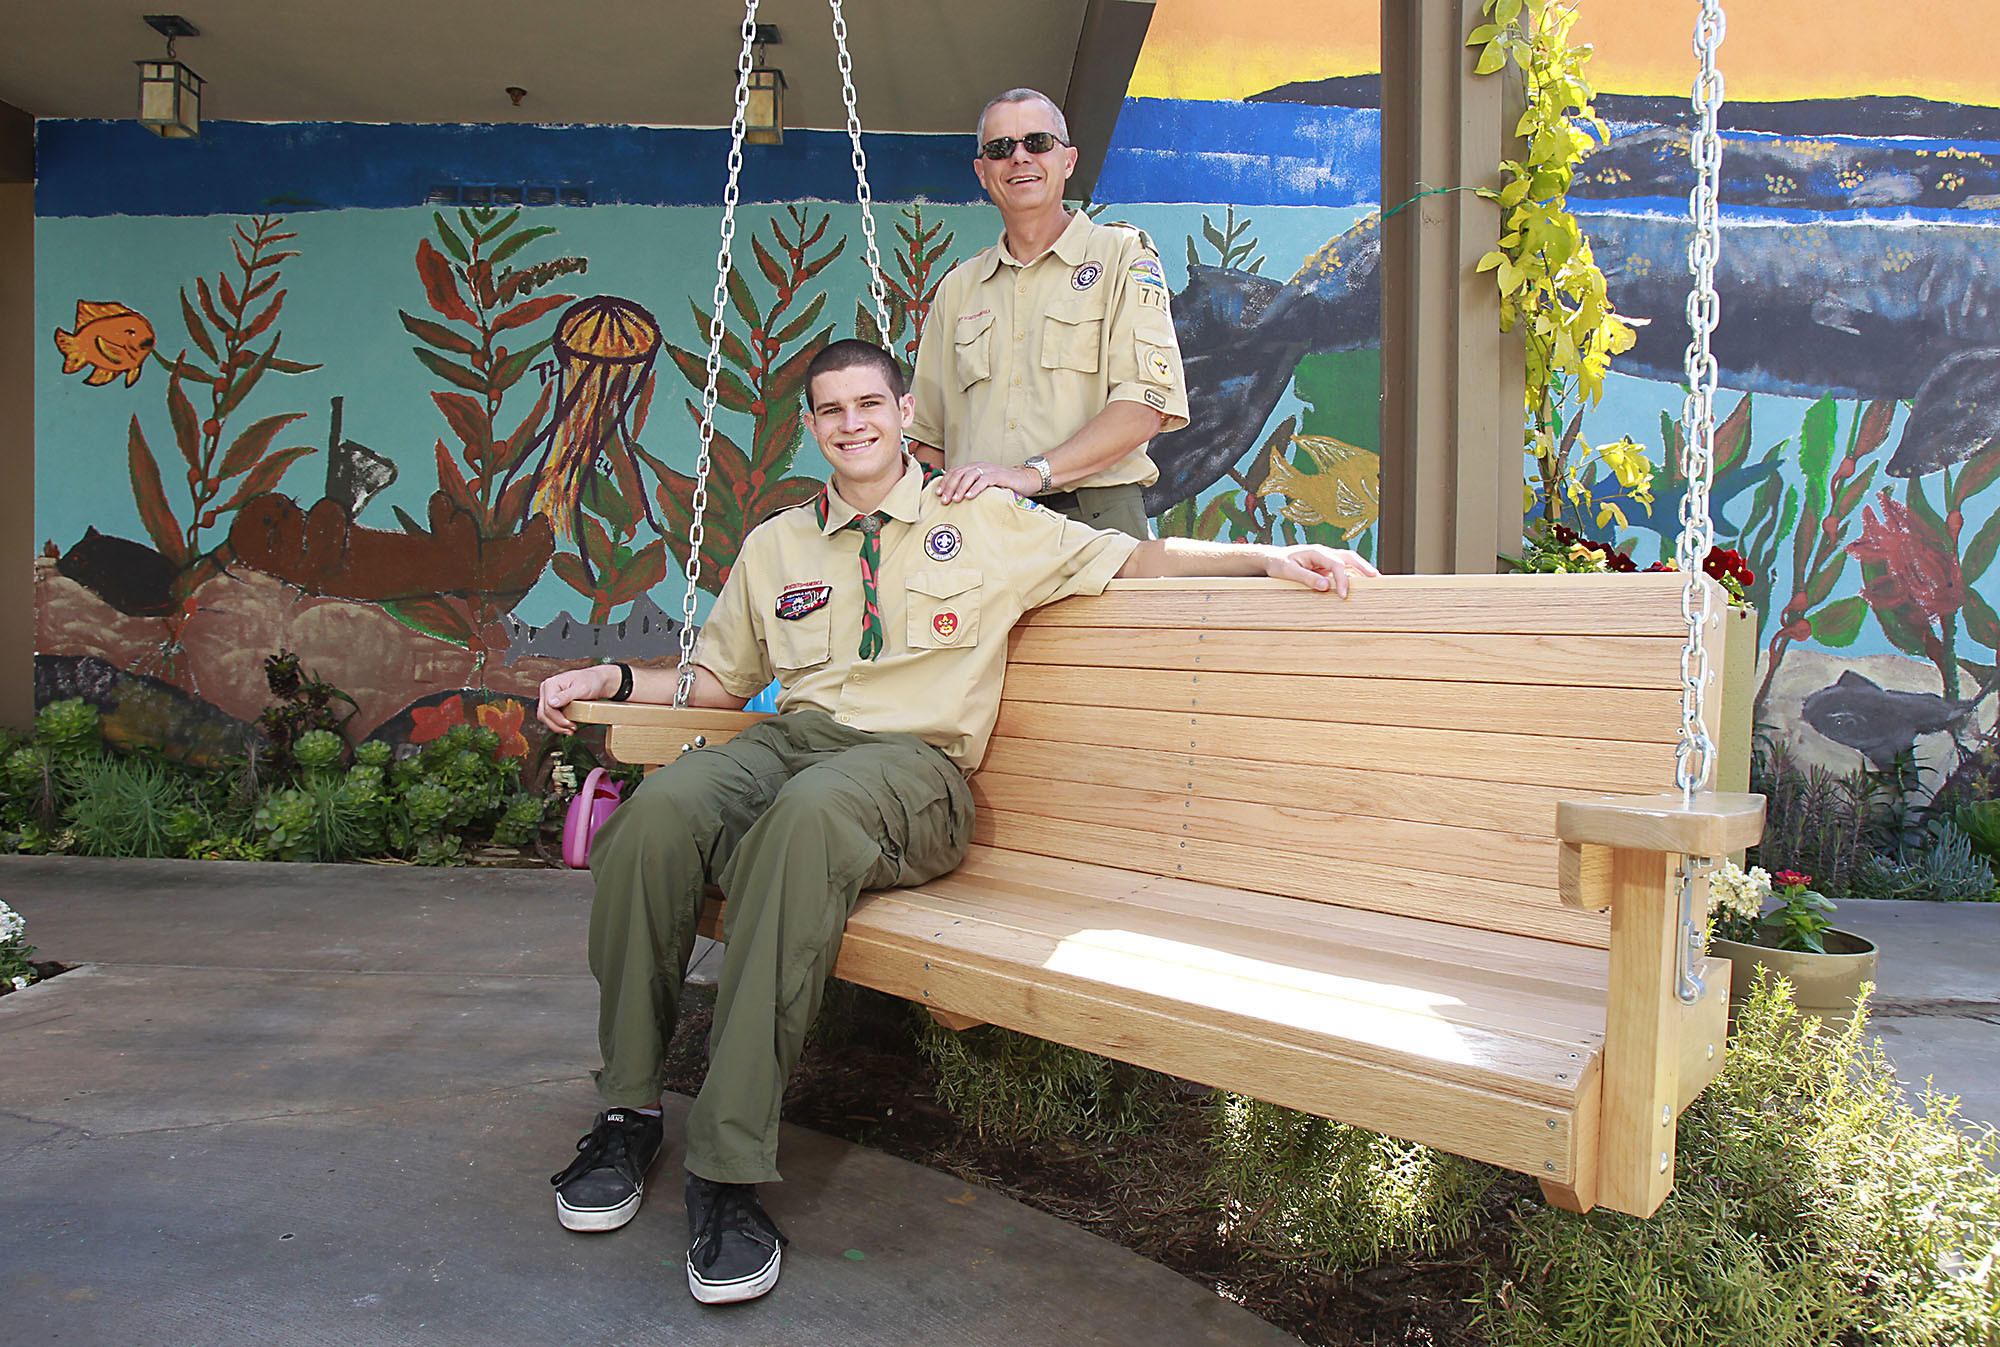 David Bailey of troop 773 in Laguna Niguel, sits on the wooden bench he built for his Eagle Scout project for the Glennwood House. He built the bench with help from his dad.